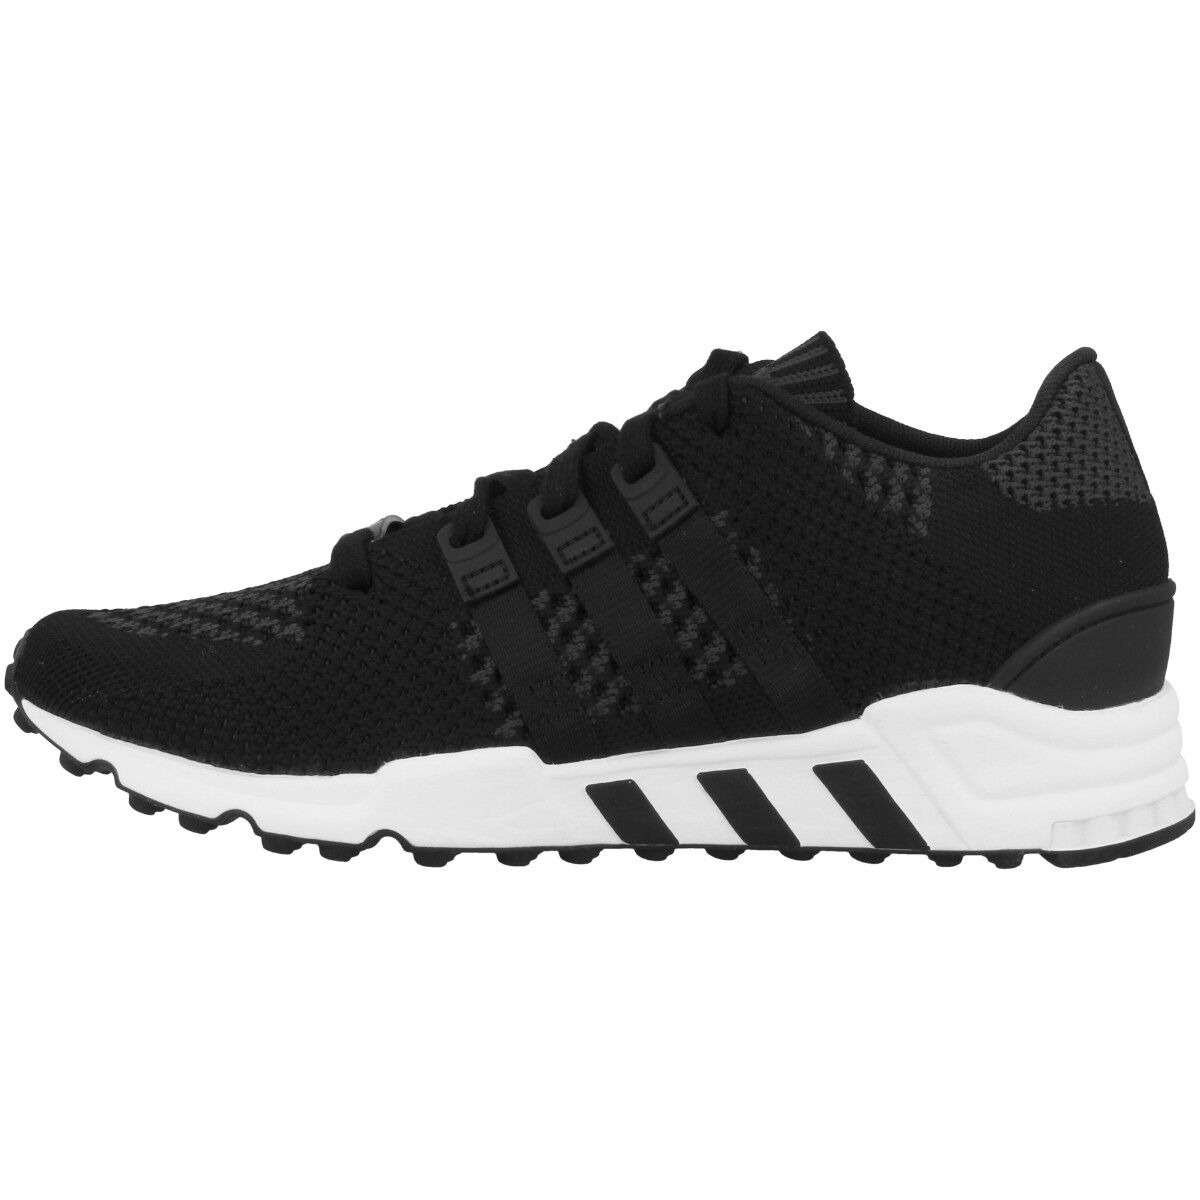 Adidas EQT Support RF Primeknit Chaussures Equipment Baskets blanc noir BY9603